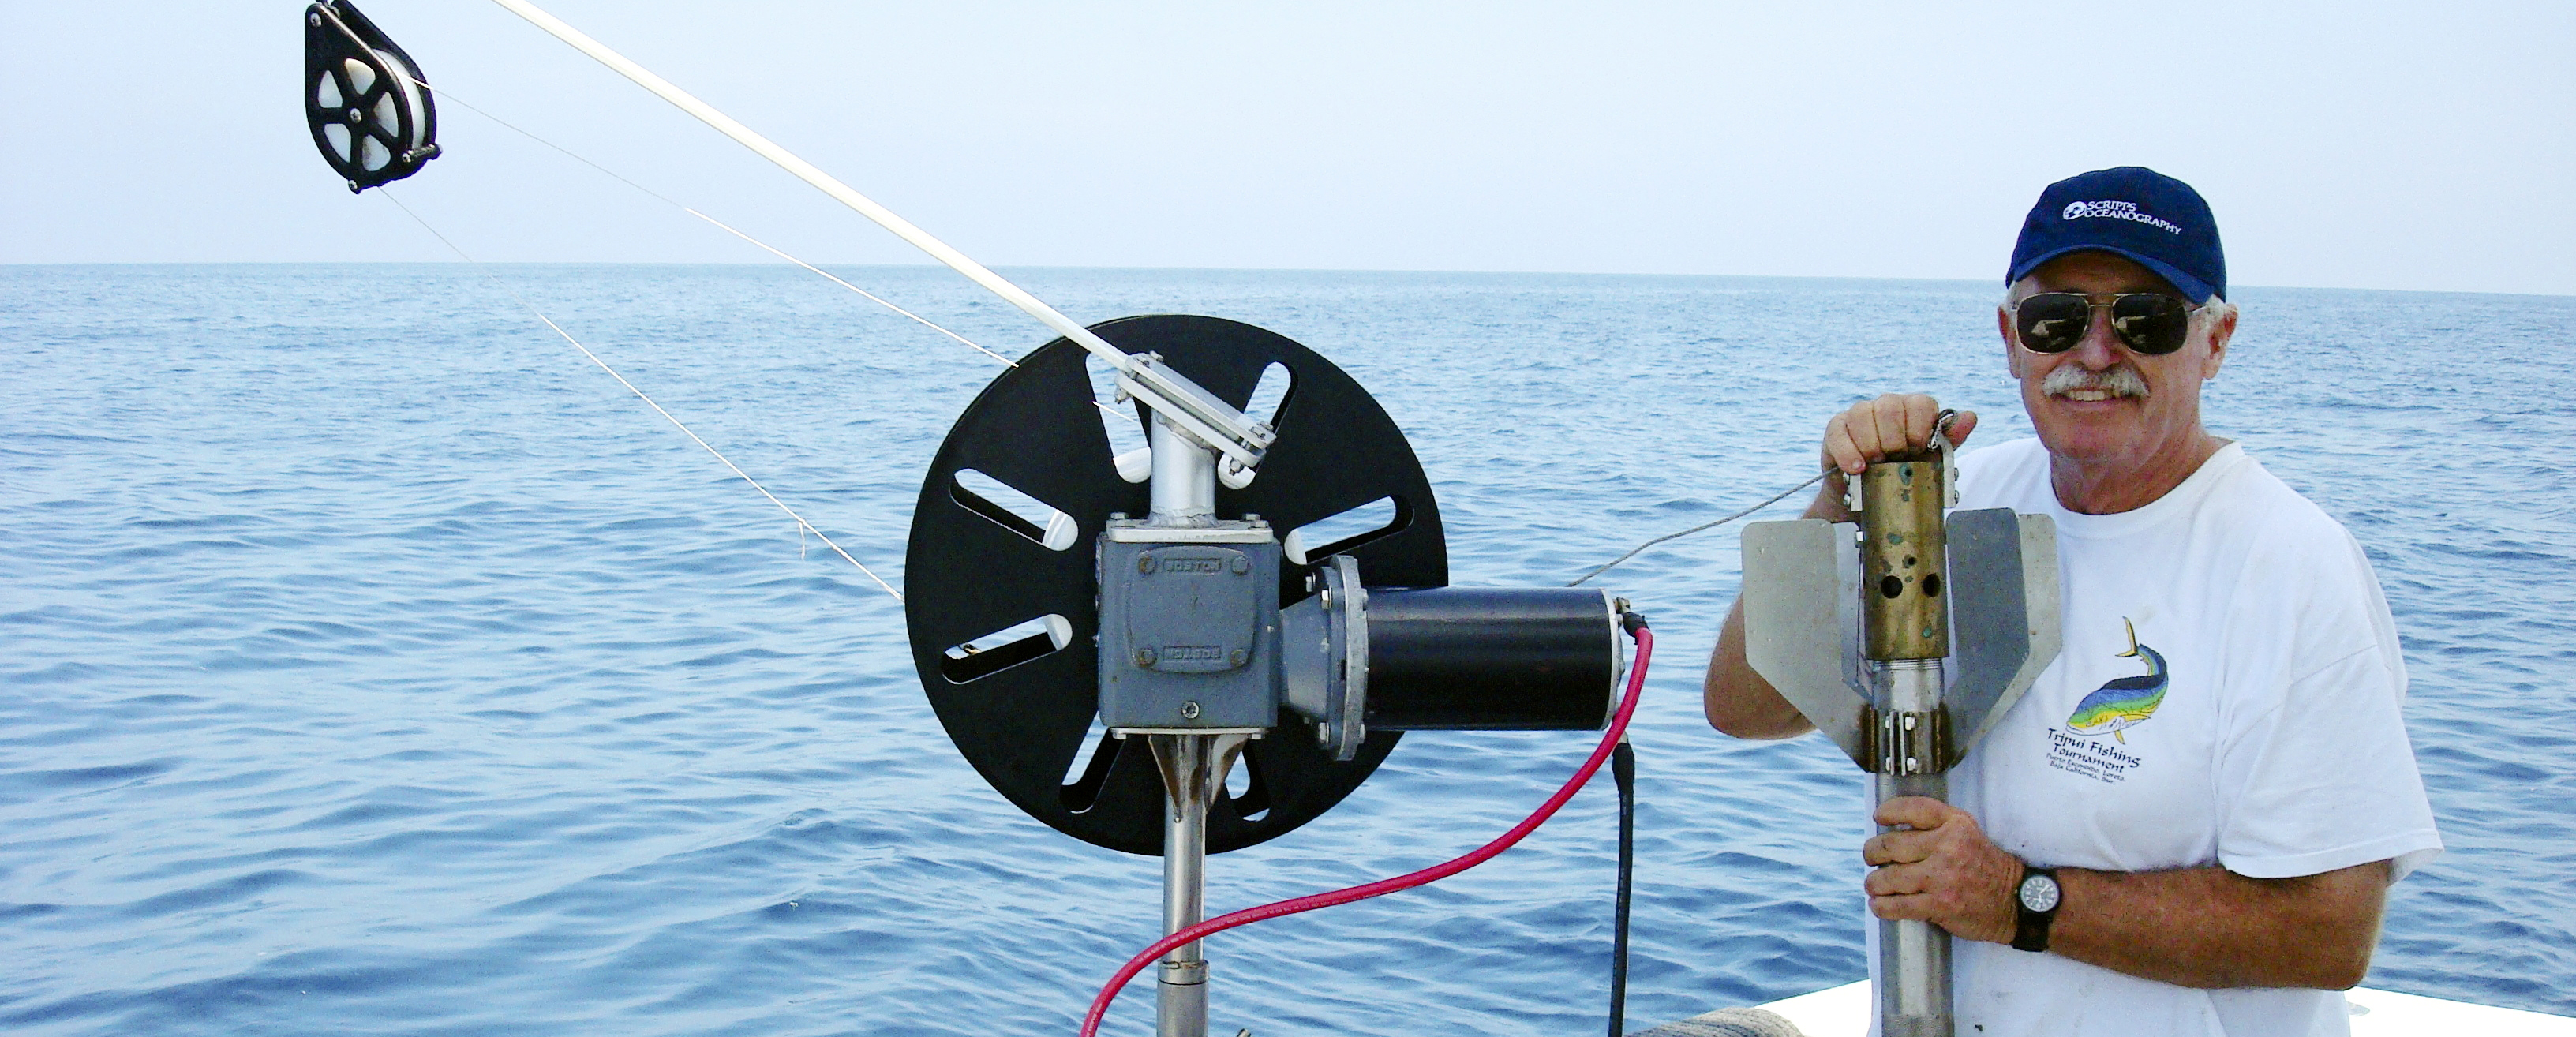 Dr. Bill Fenical collecting samples at sea that could result in the development of new medicines.